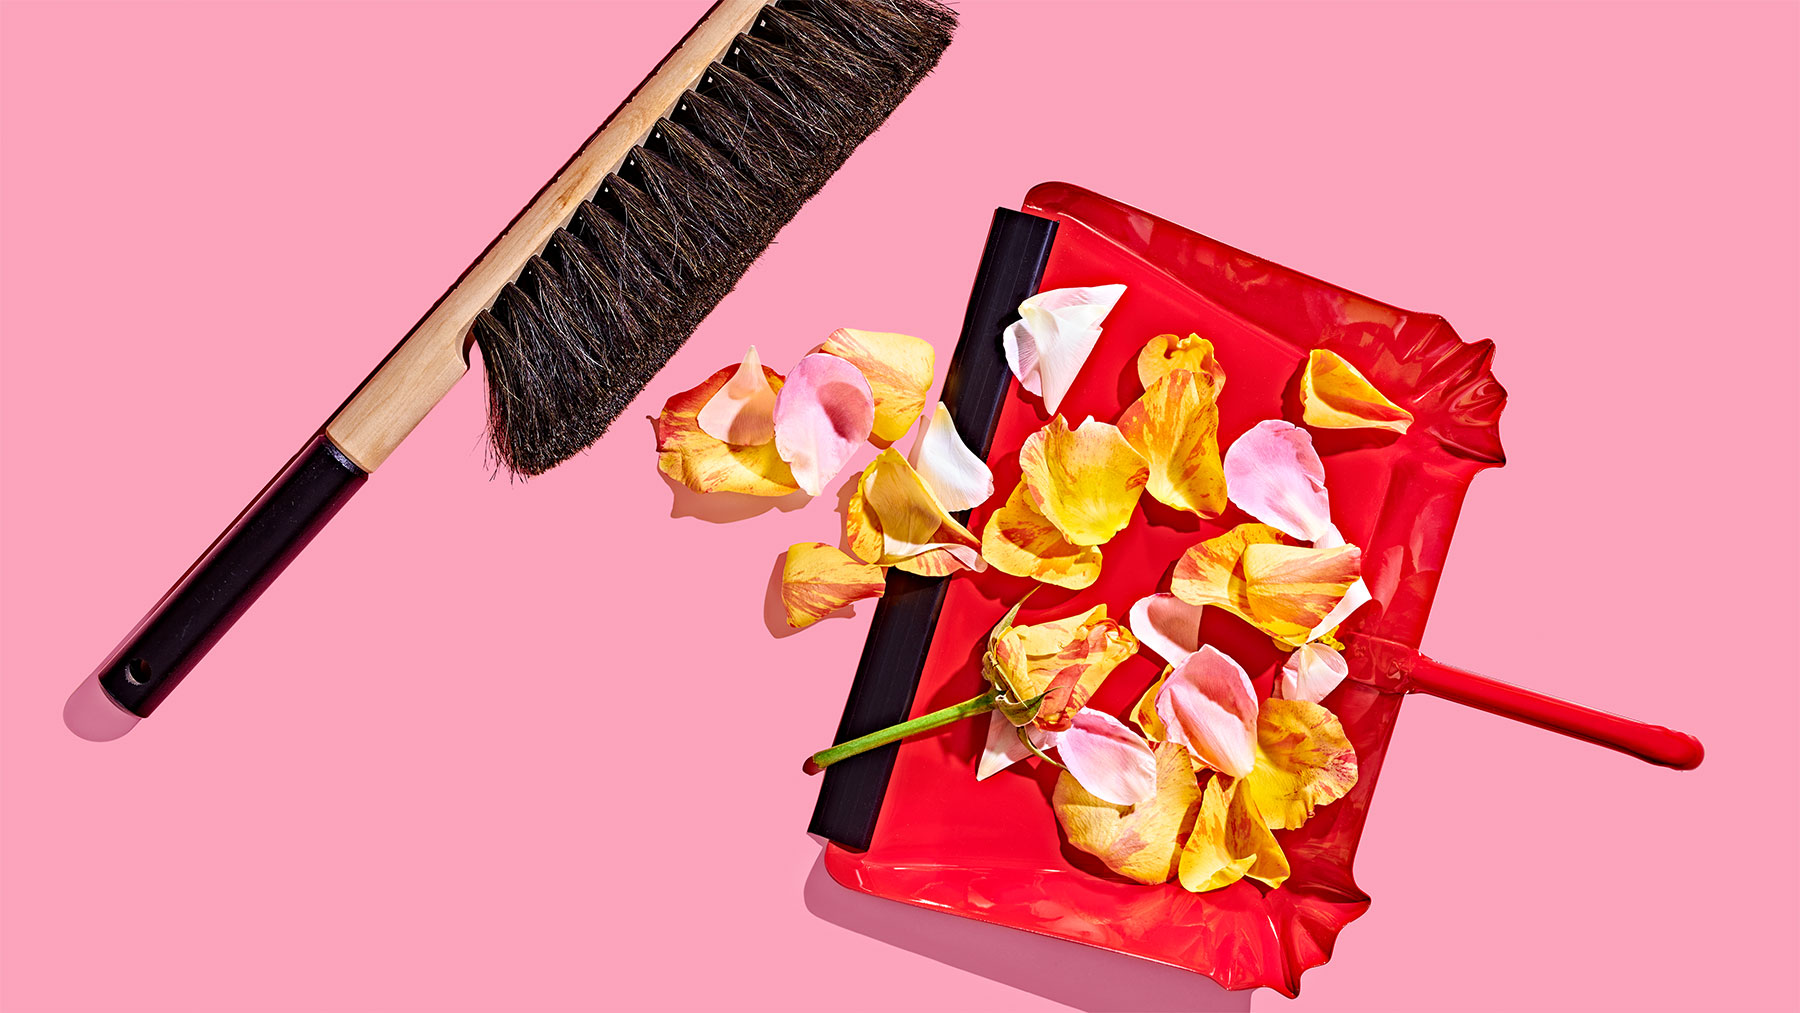 How to spring clean your life: dustpan and broom